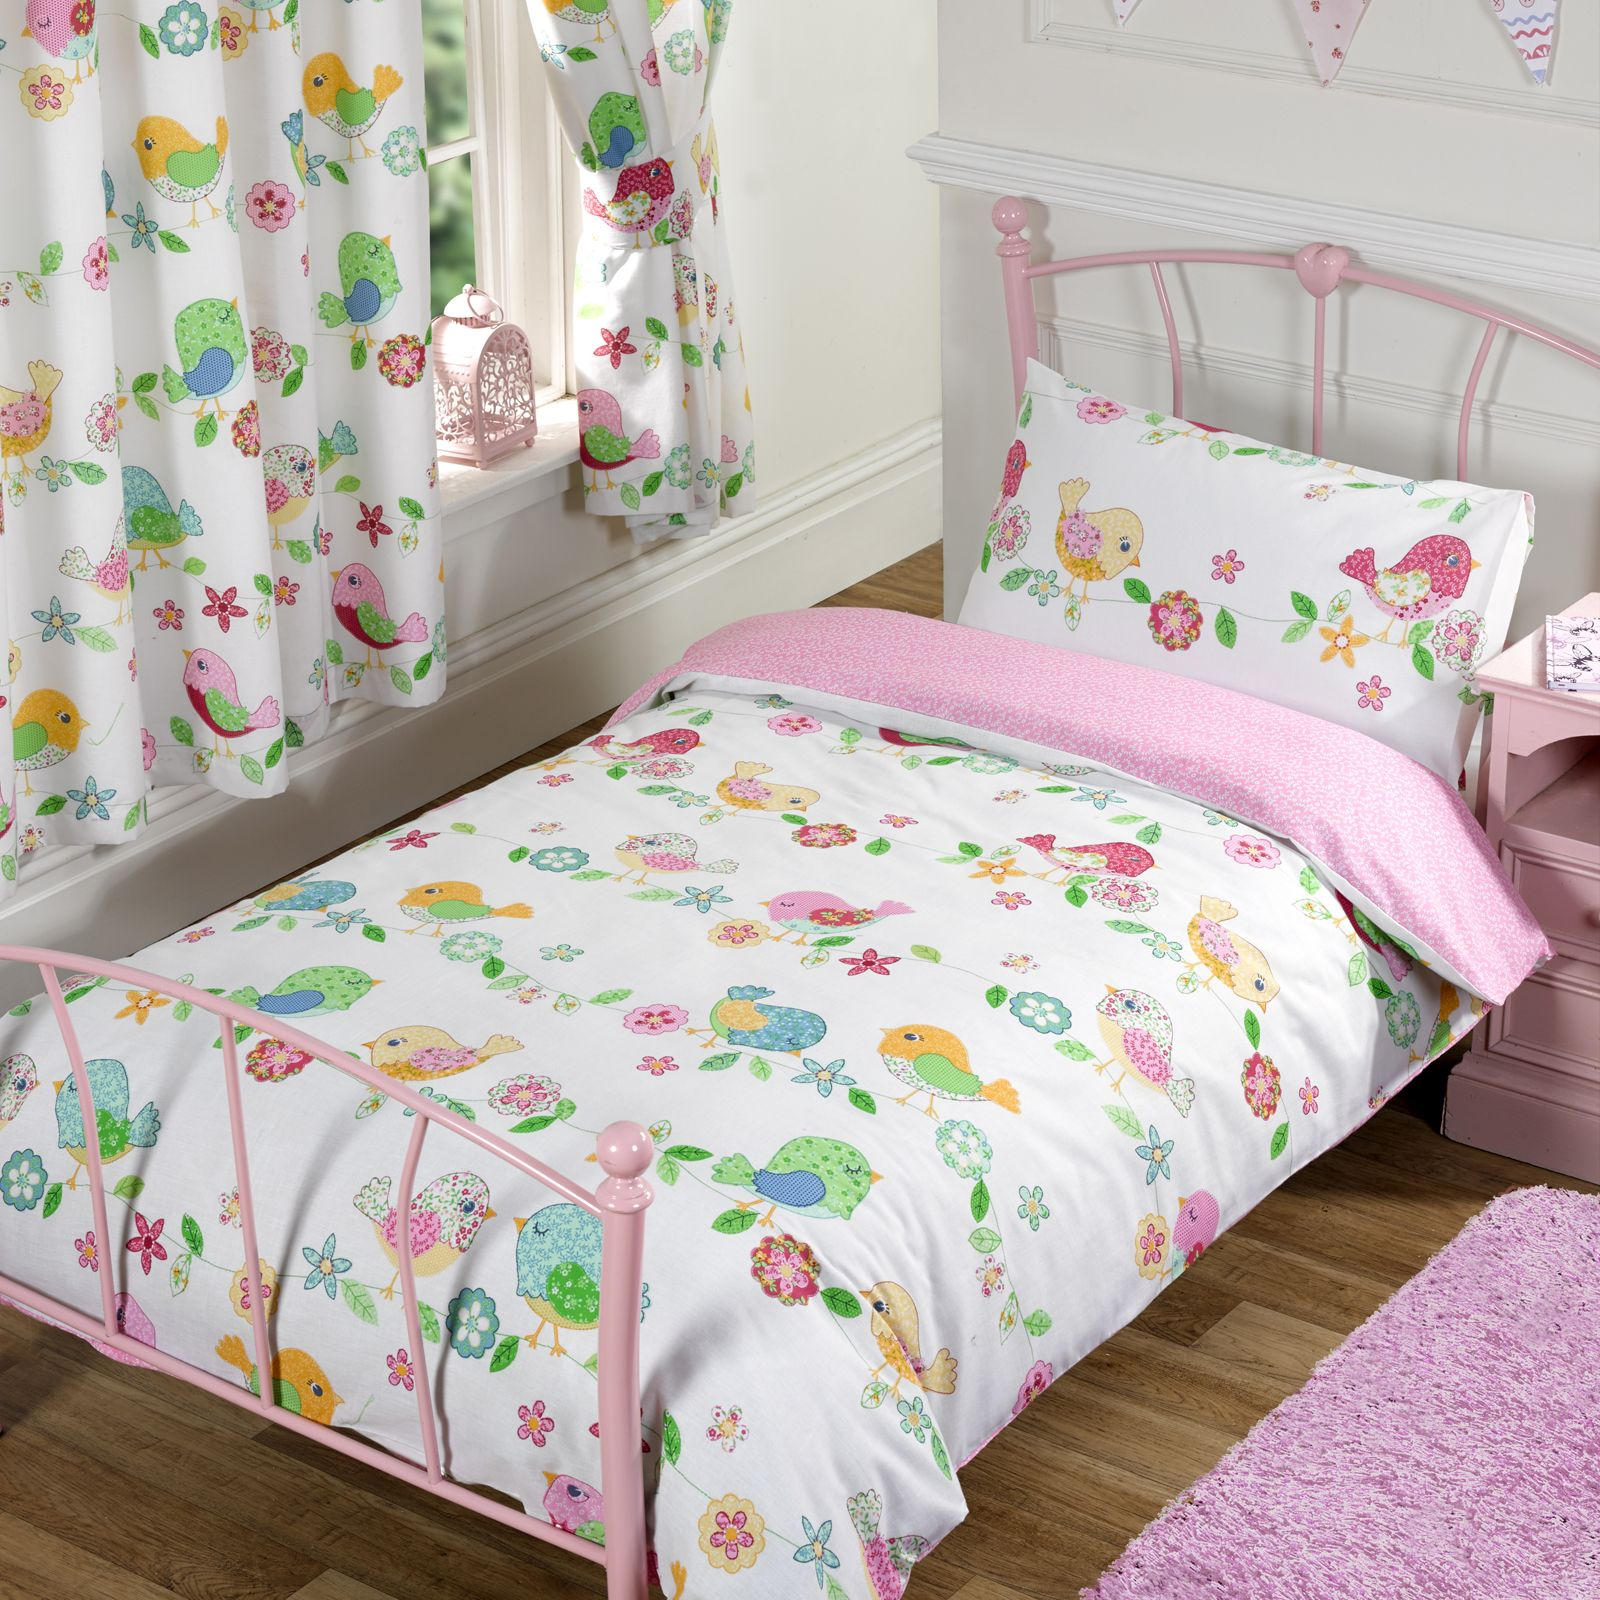 BIRD Amp OWL GIRLS DUVET COVERS VARIOUS DESIGNS